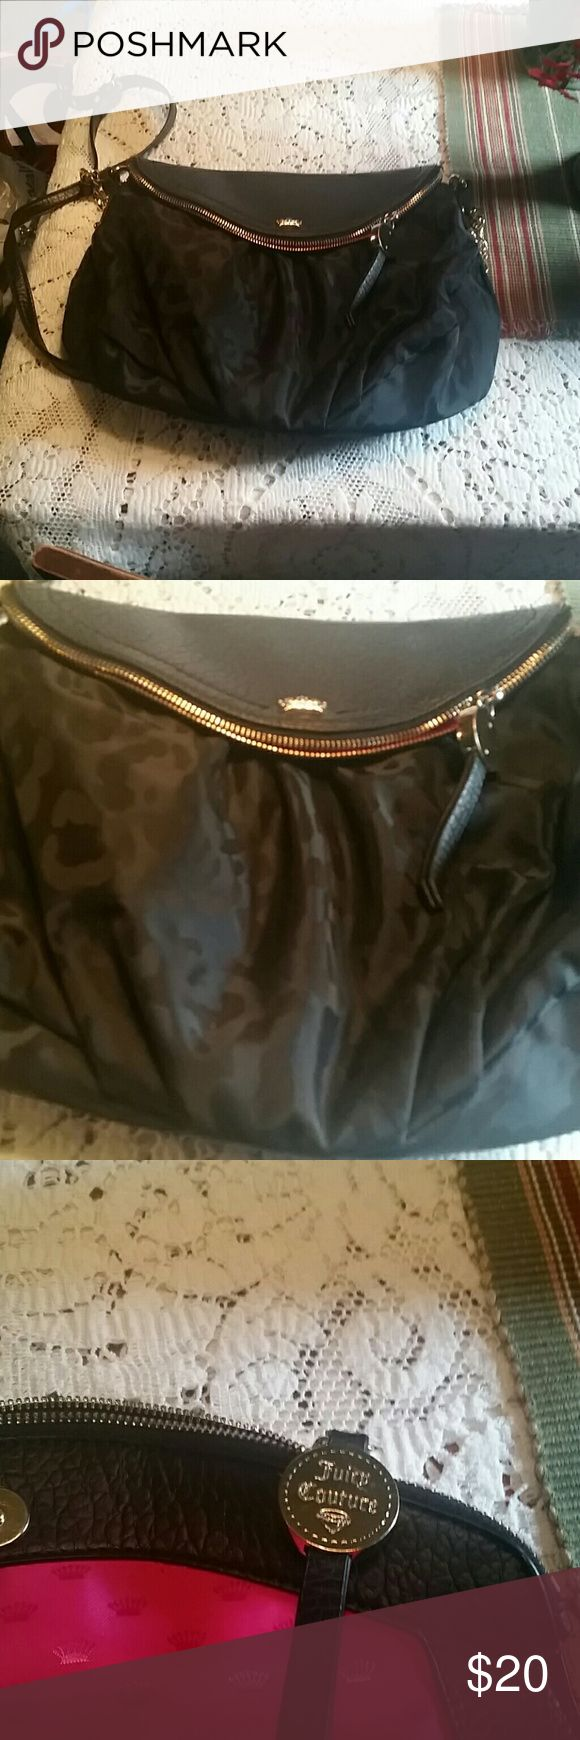 Women's handbags Black with  fabric print outside.  The fold over flap is poly the lining is pink satin (nwot ) the flap has zipper pocket Juicy Couture Bags